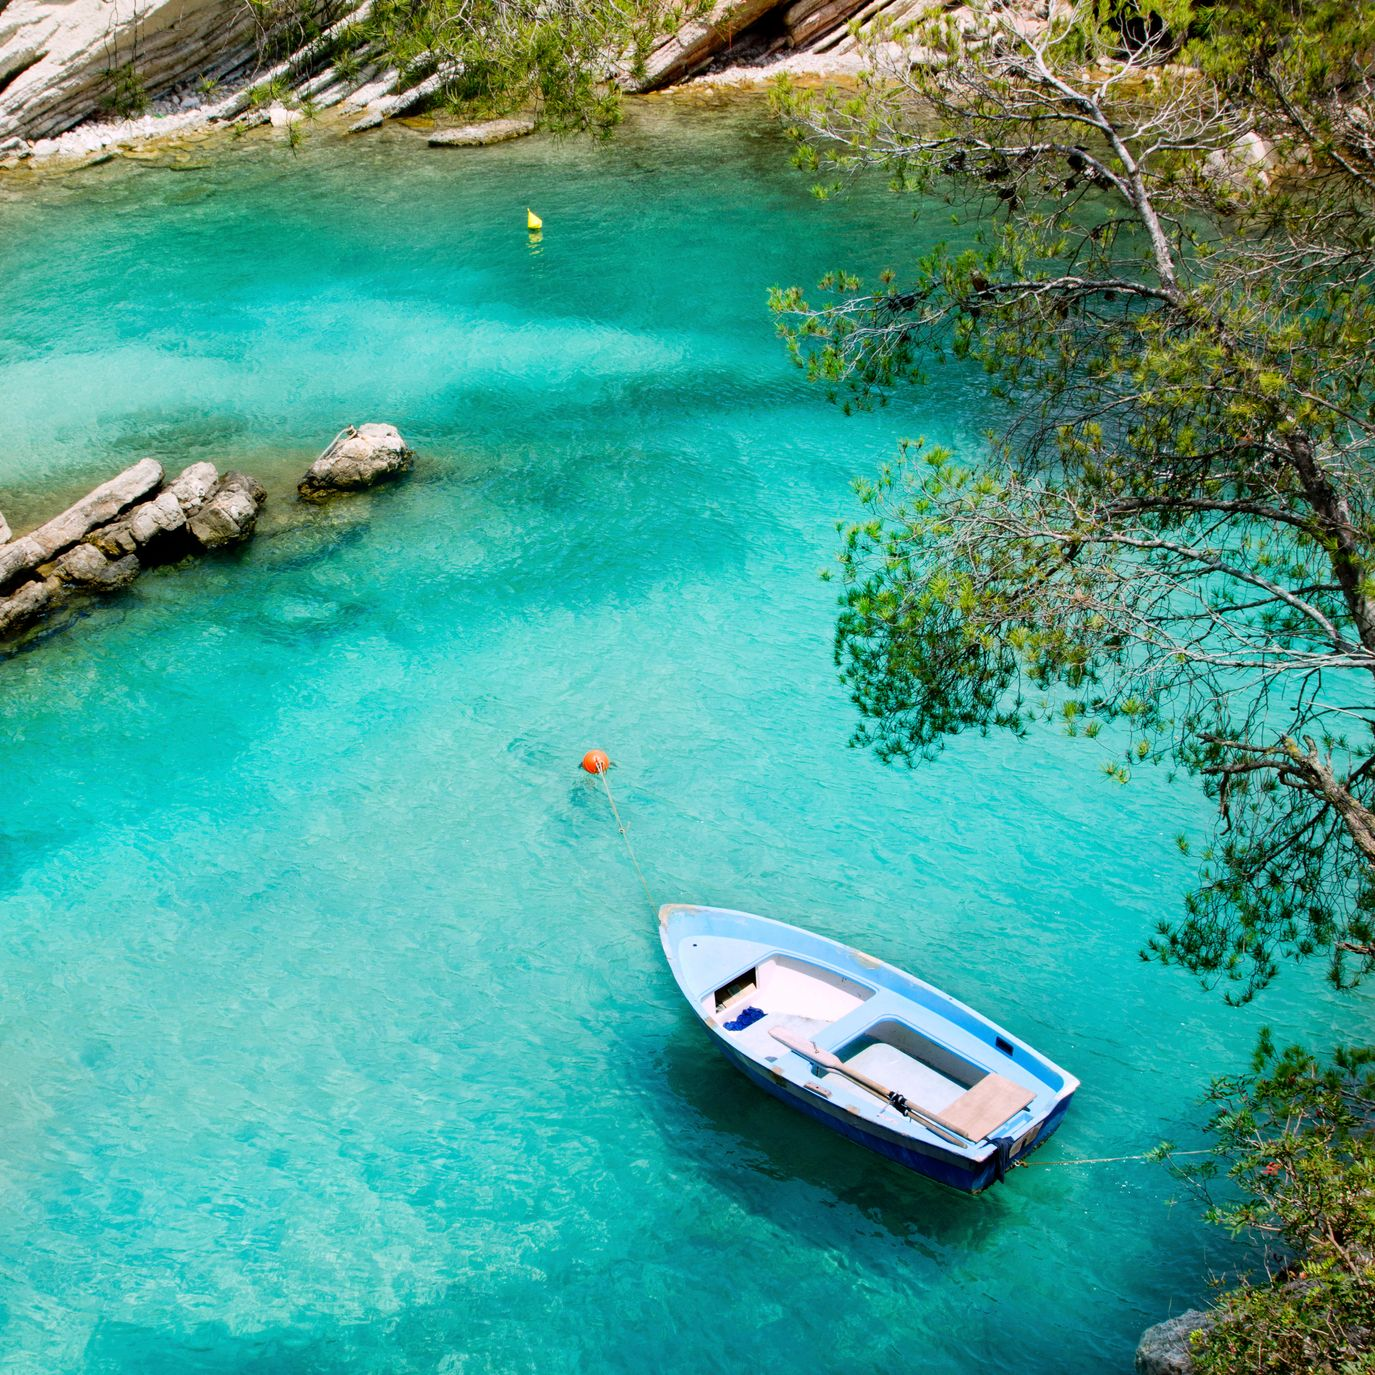 Boat in turquoise waters in Majorca, Spain